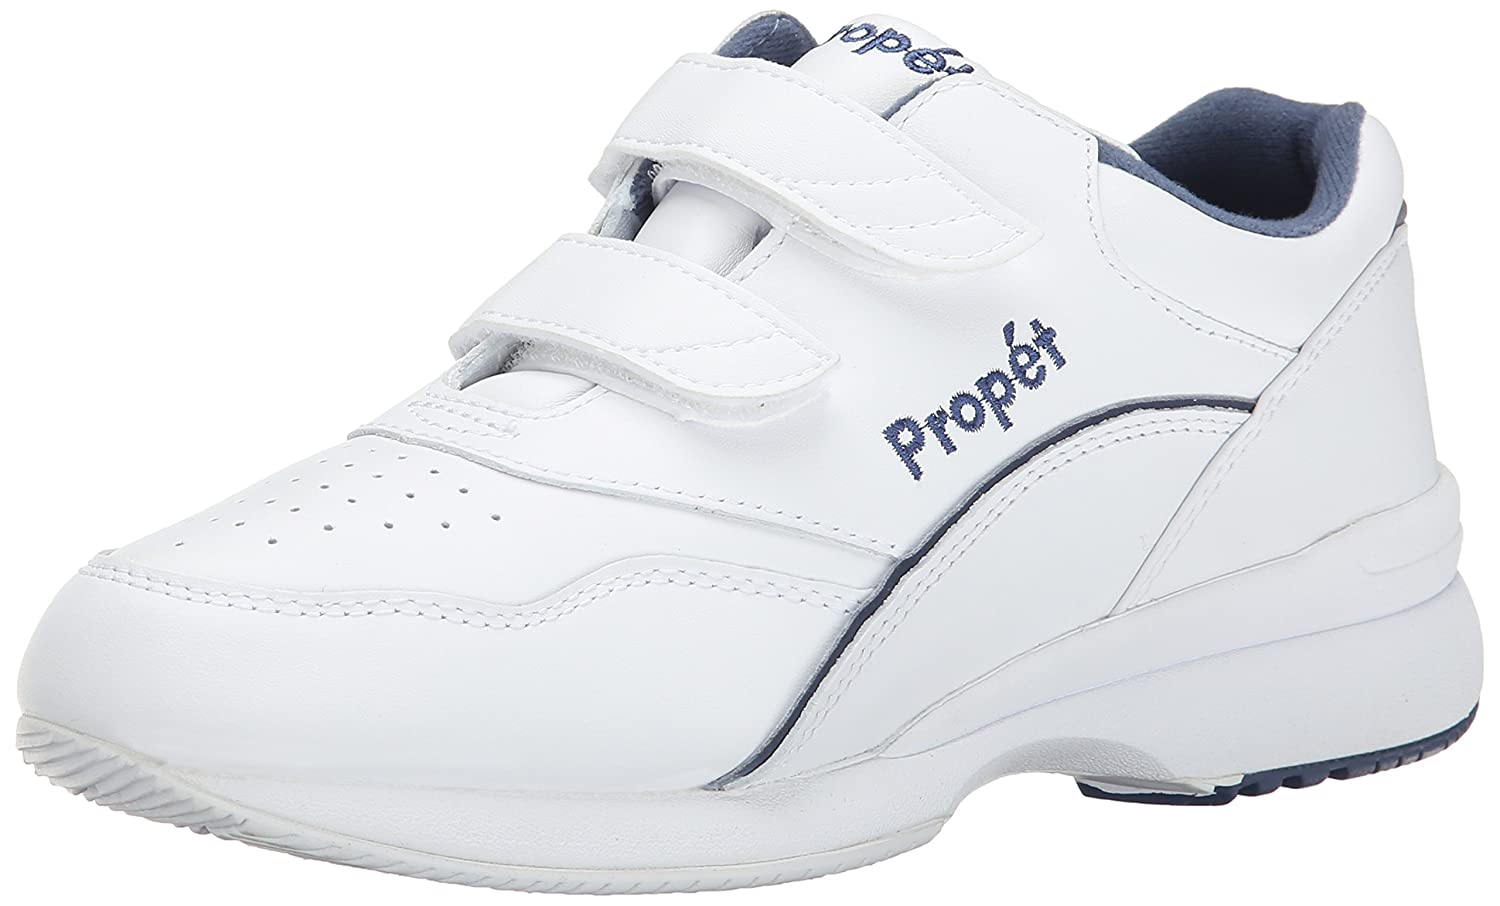 Propet Women's Tour Walker Strap Sneaker B000BO13YW 11 XX US|White/Blue